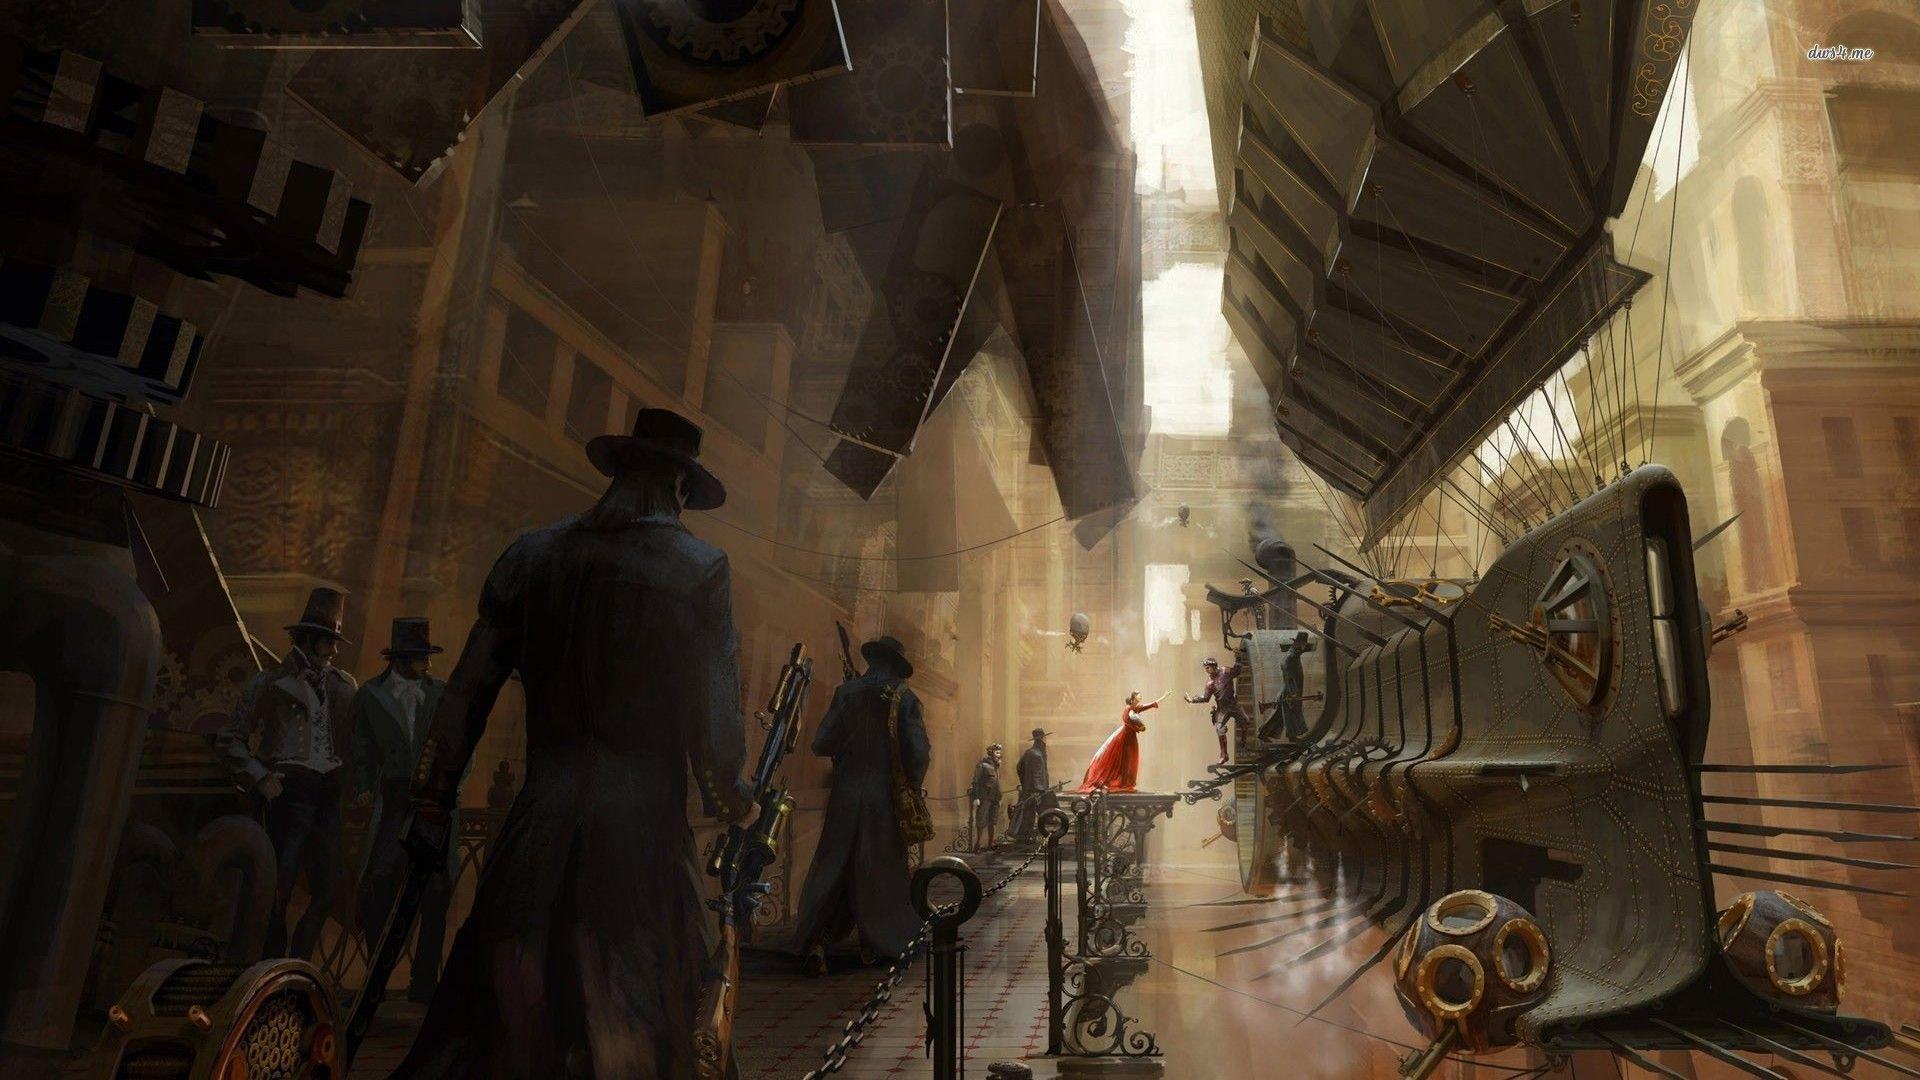 Steampunk City Wallpaper Hd Images amp Pictures   Becuo 1920x1080